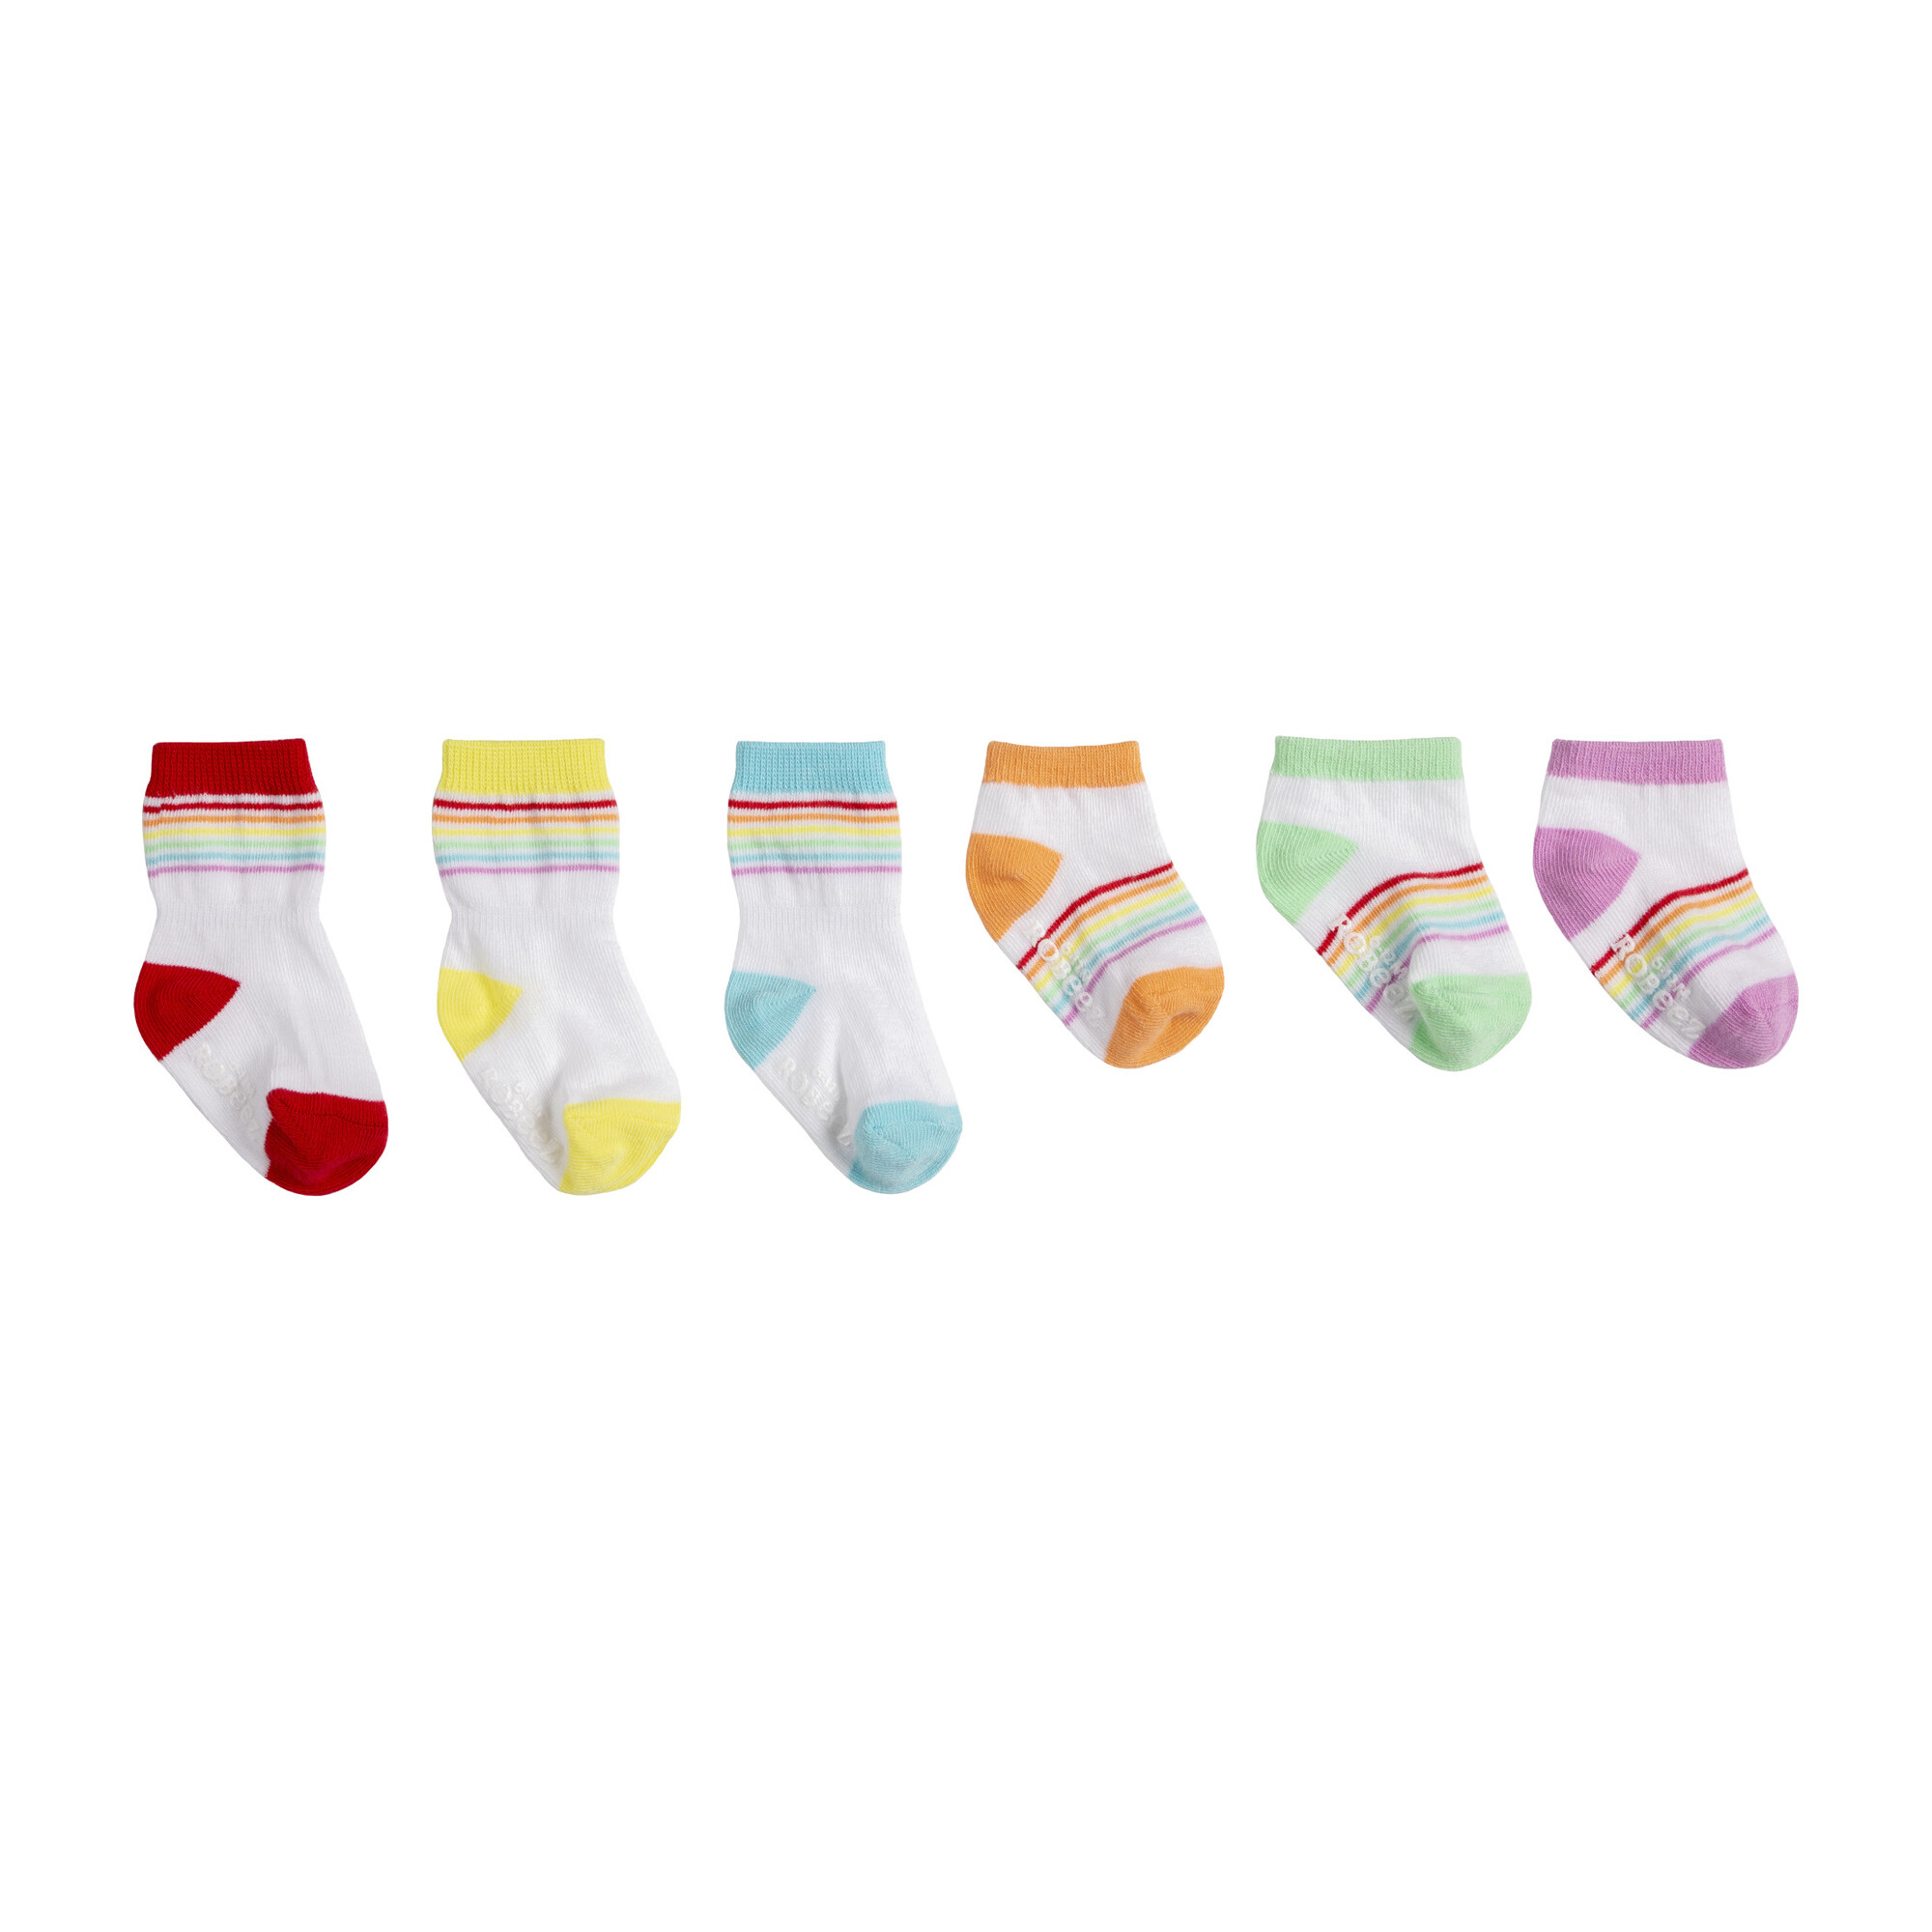 Rainbow Essentials Socks Set, Multi